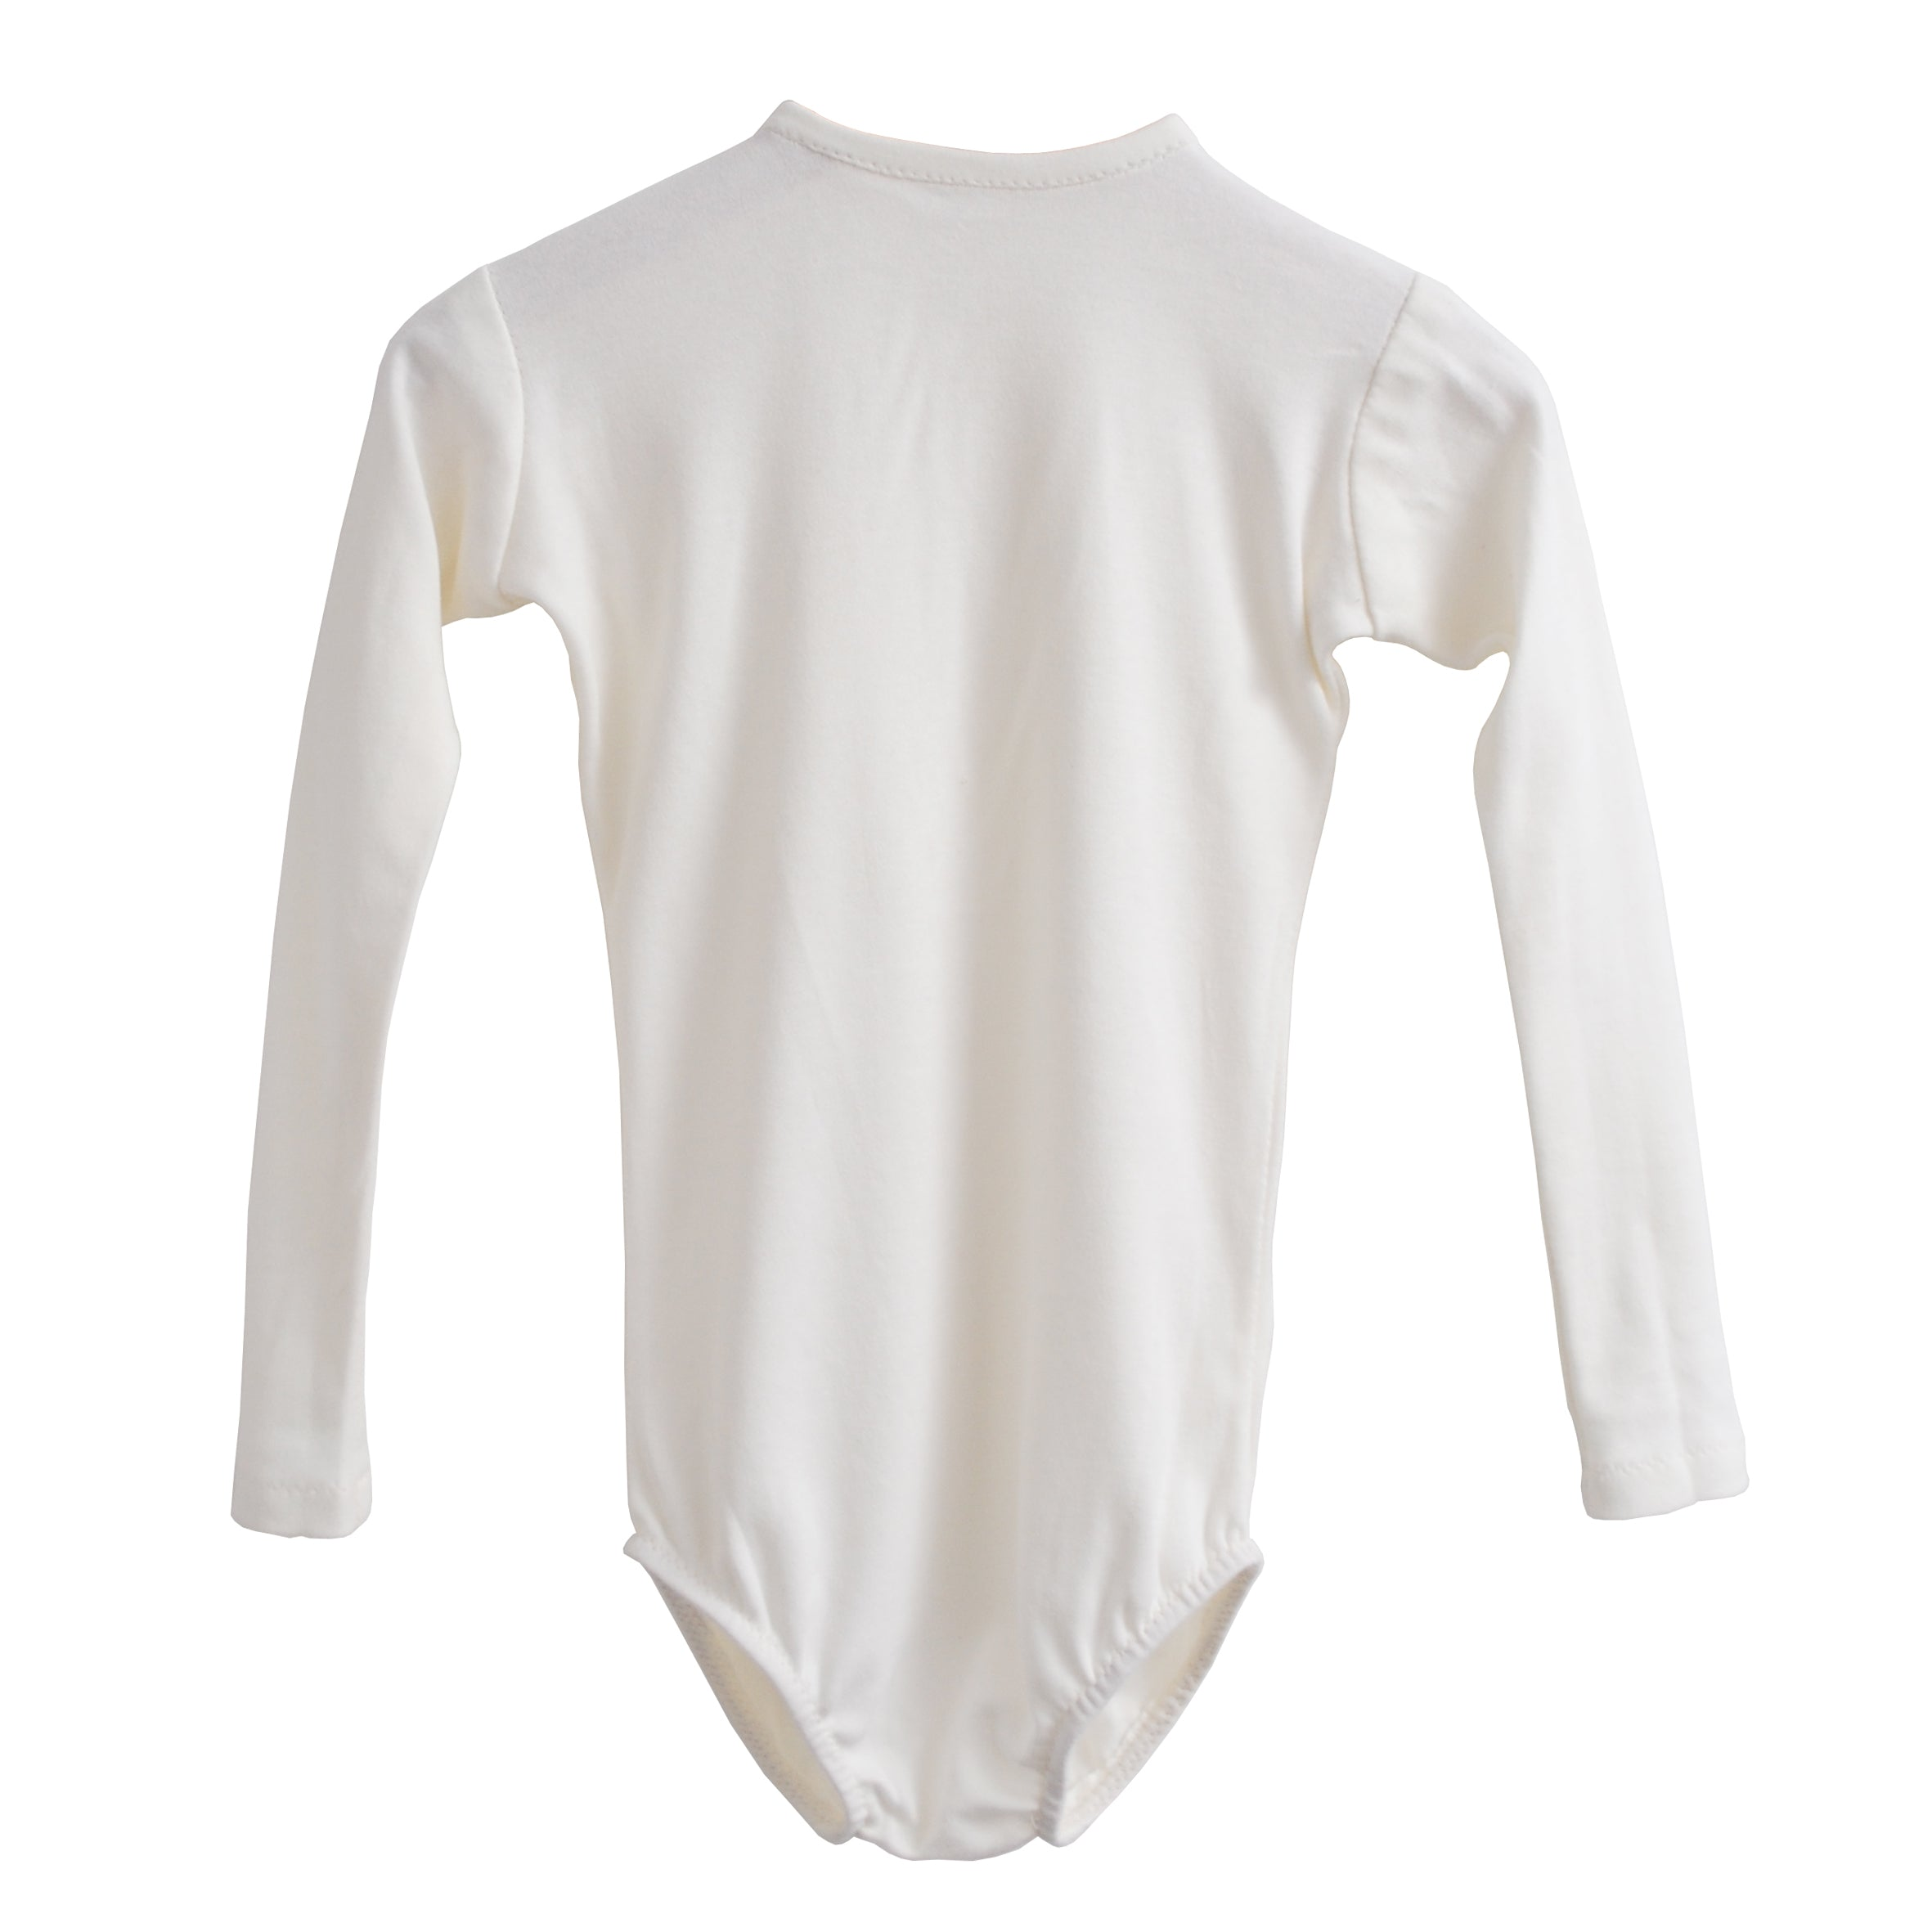 Fable Heart Cream Jersey Leotard